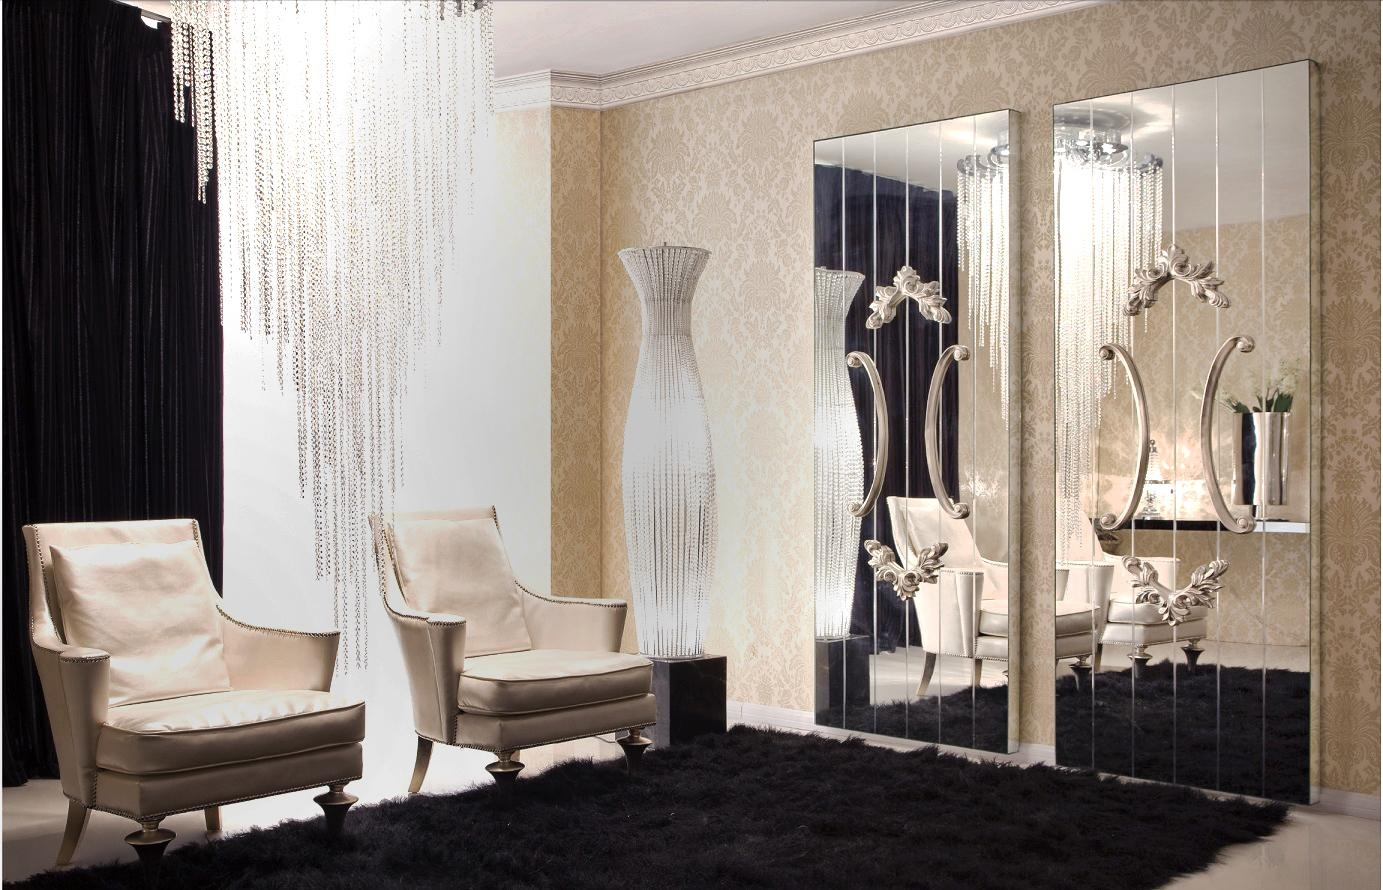 Large Decorative Wall Mirrors The Home Design : The Beauty Of With Regard To Big Wall Mirrors (View 10 of 20)